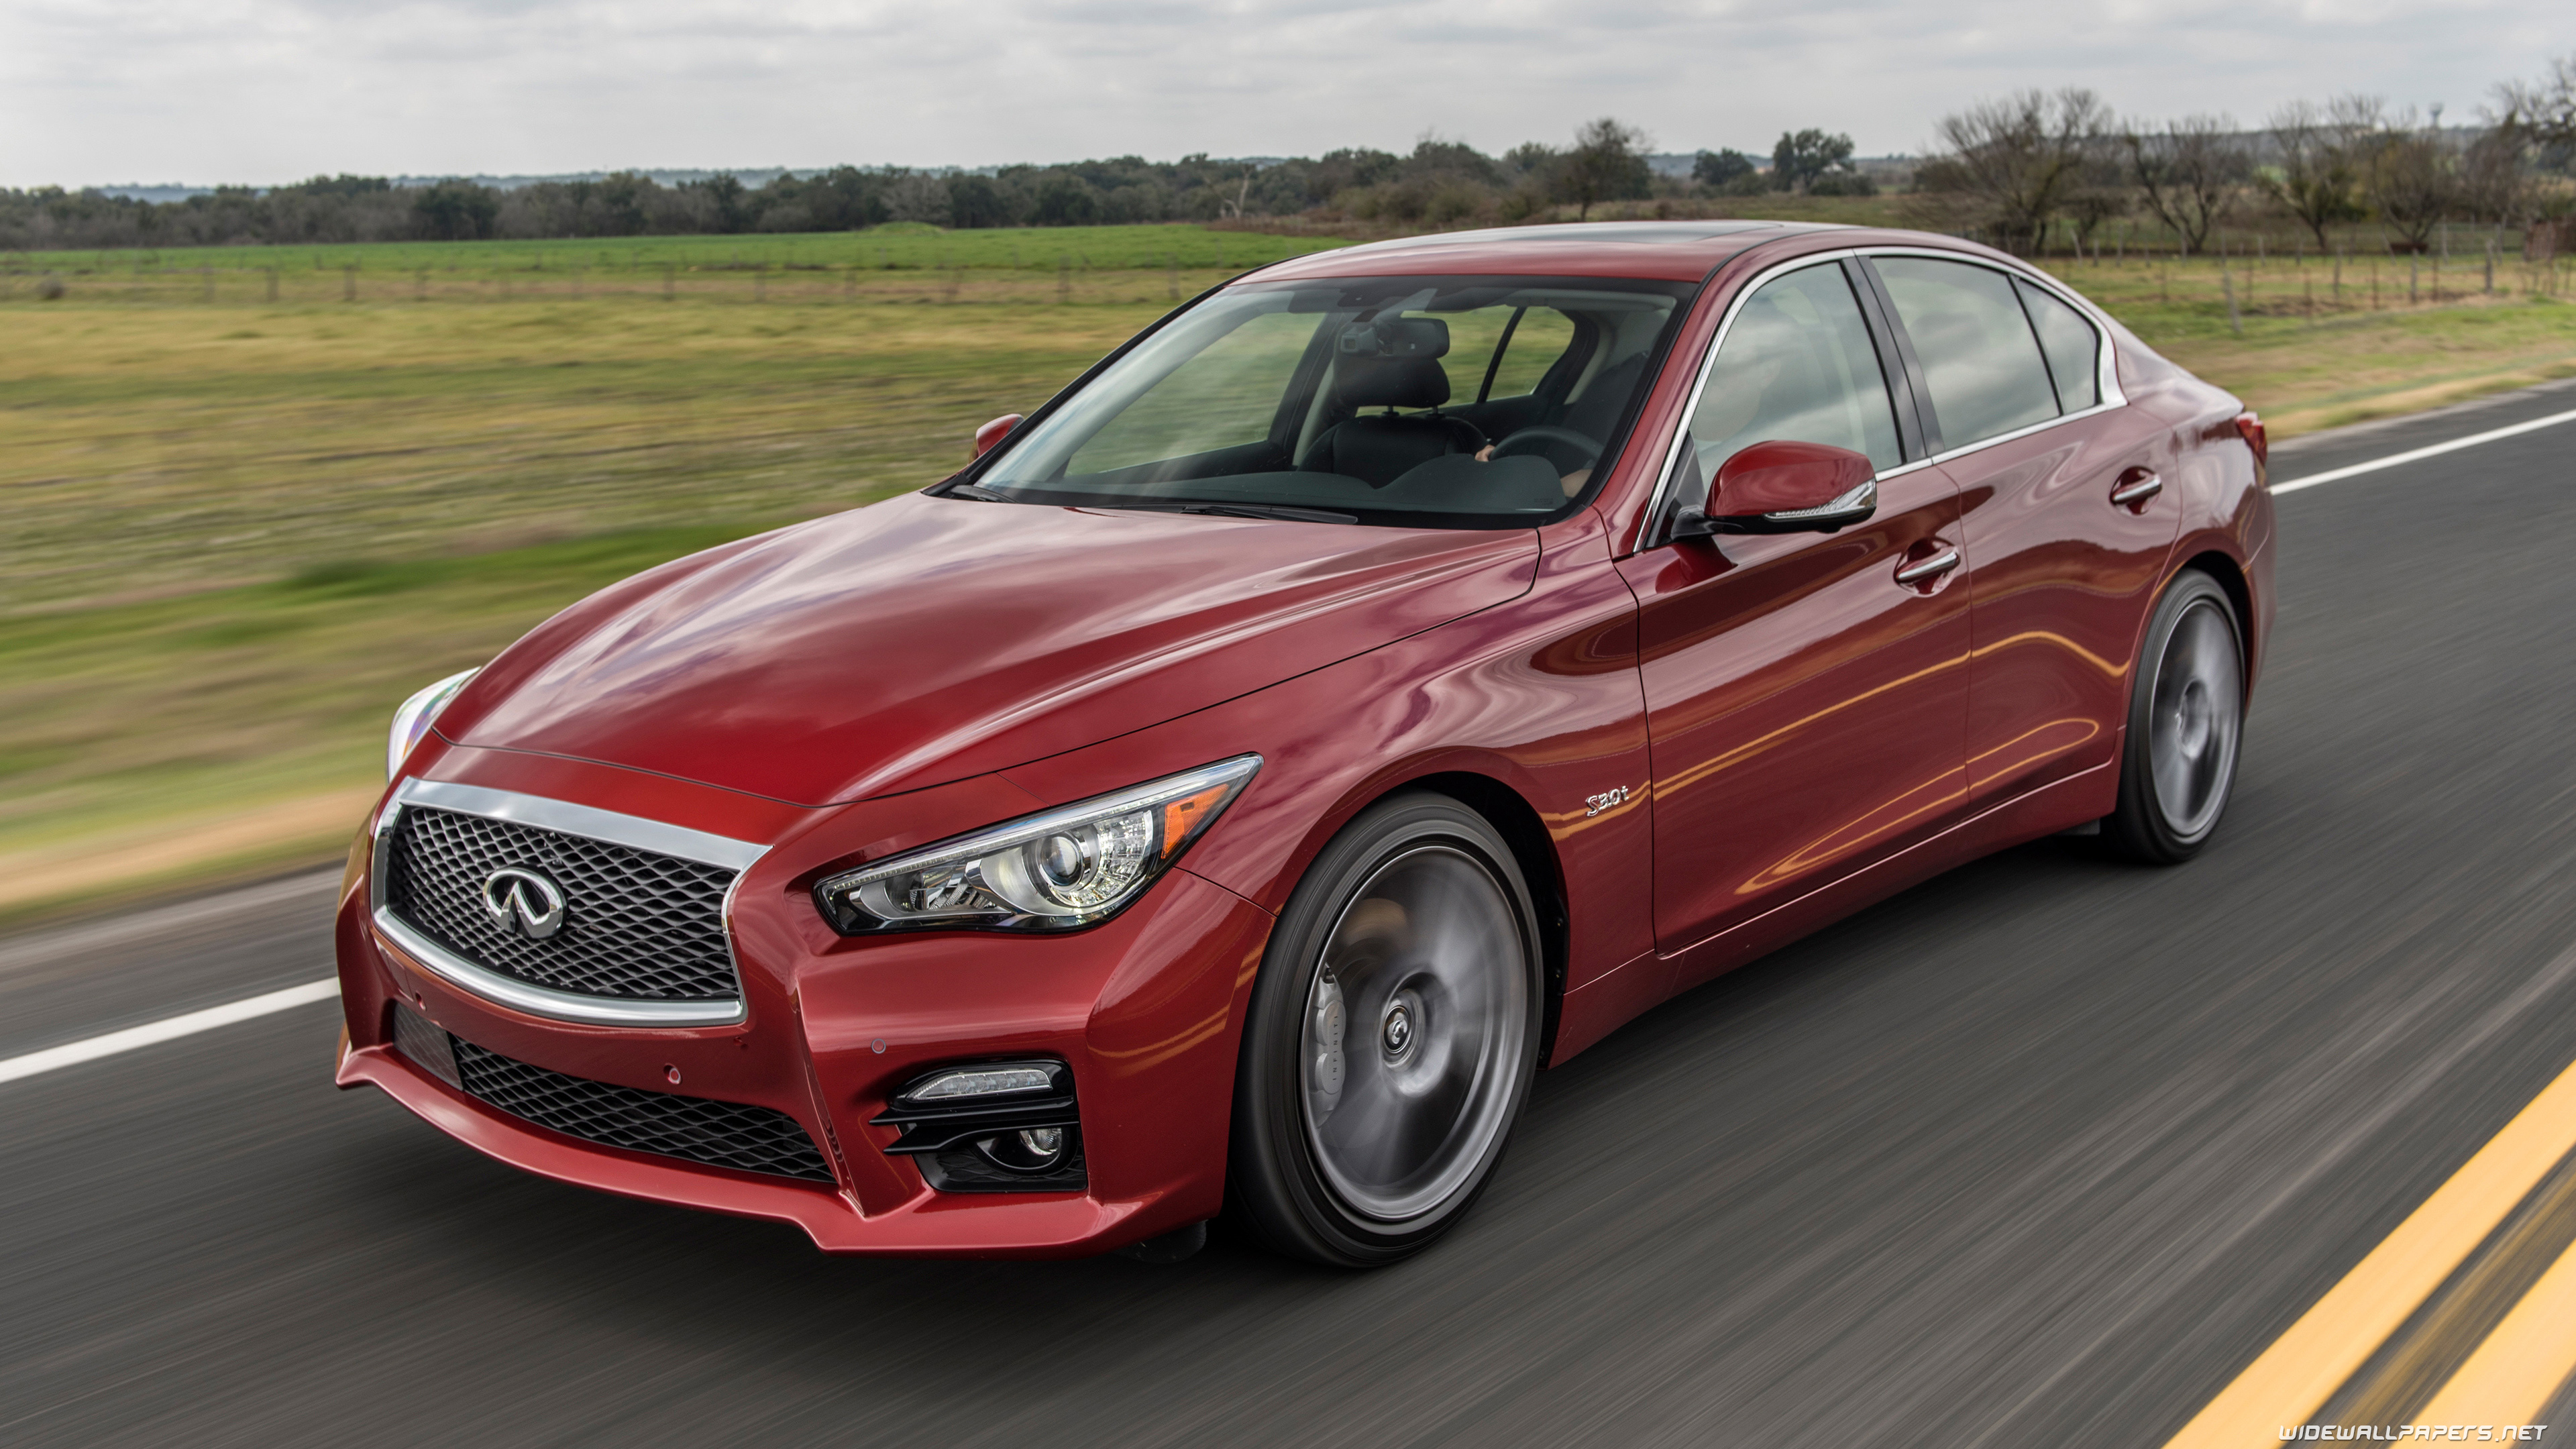 Infiniti Q50 Car Wallpapers